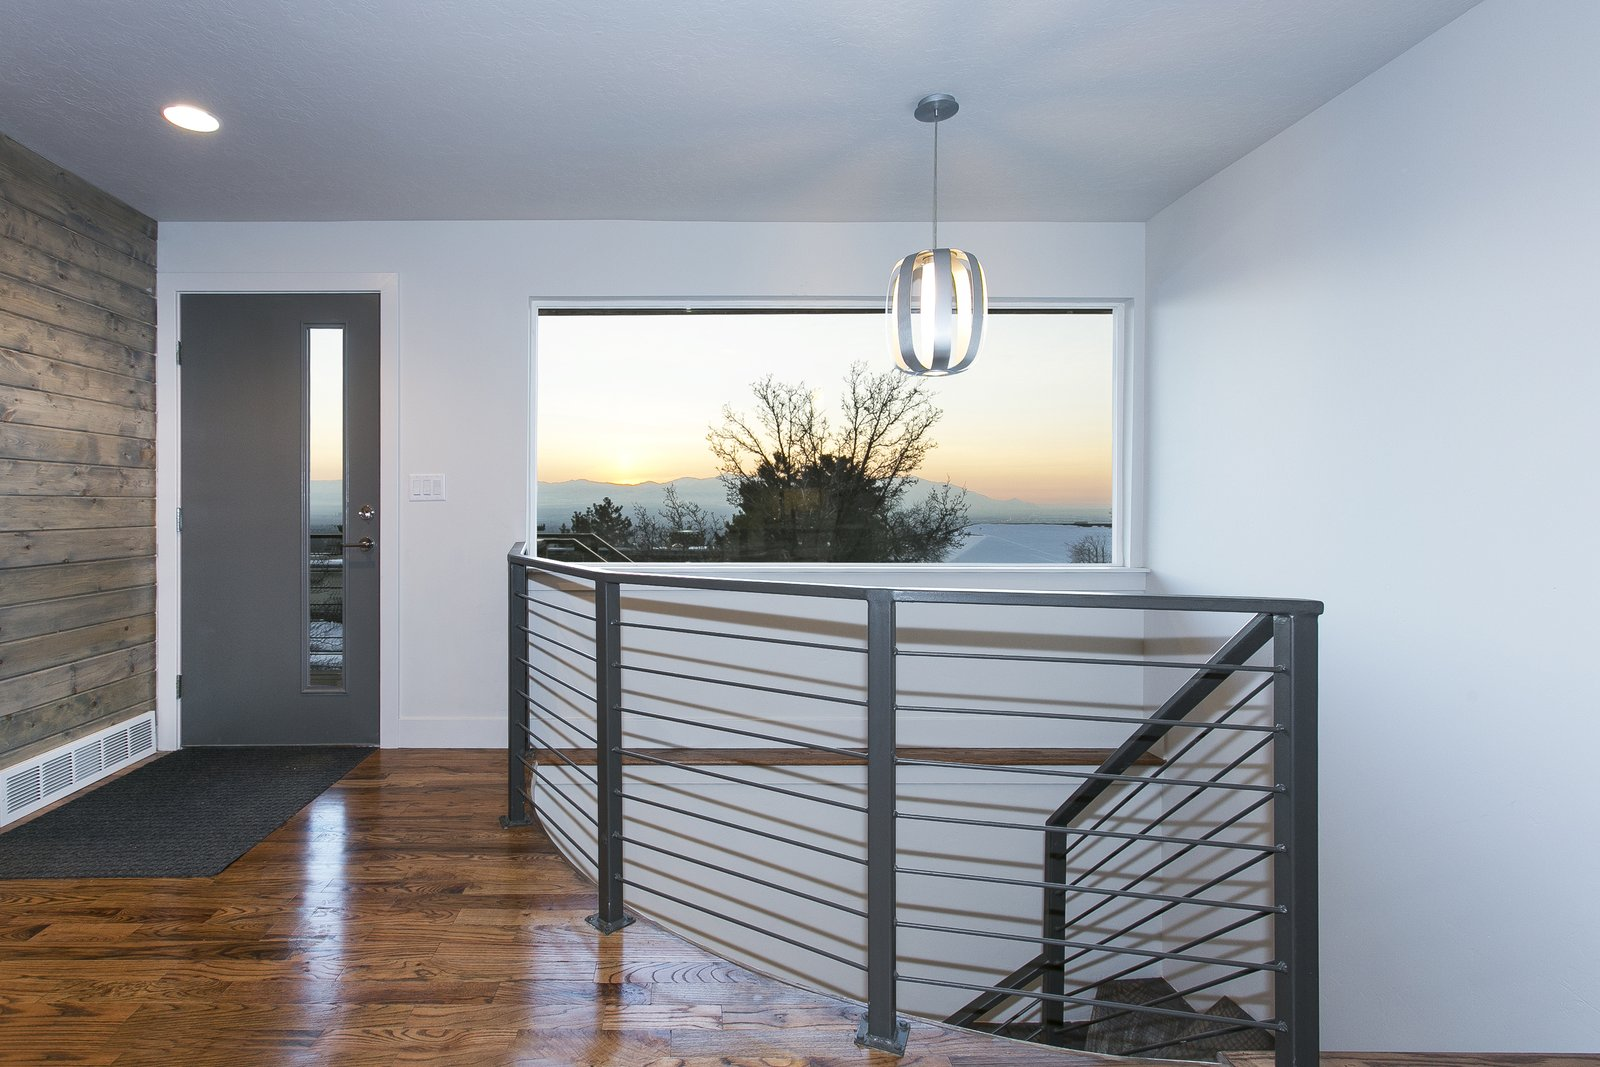 The front entry has a equal blend of oak, cedar and steel railing that creates a great space to soak in the Salt Lake Valley views of the Oquirrh mountain range.  King of the Wasatch by The Muve Group